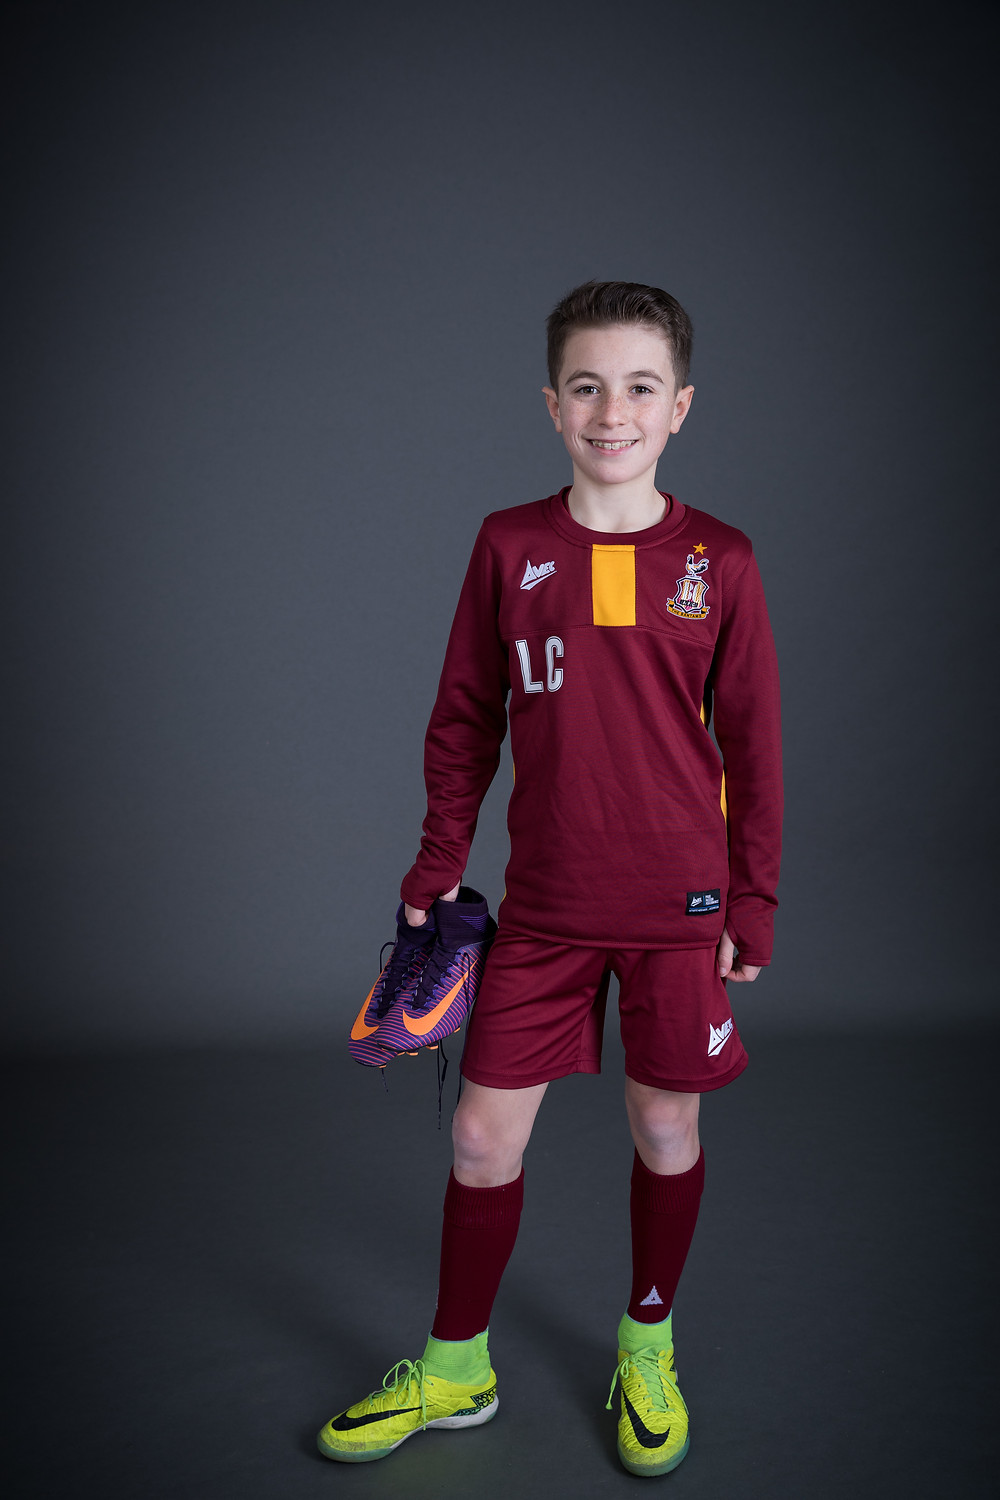 FDS player joins Bradford City Academy